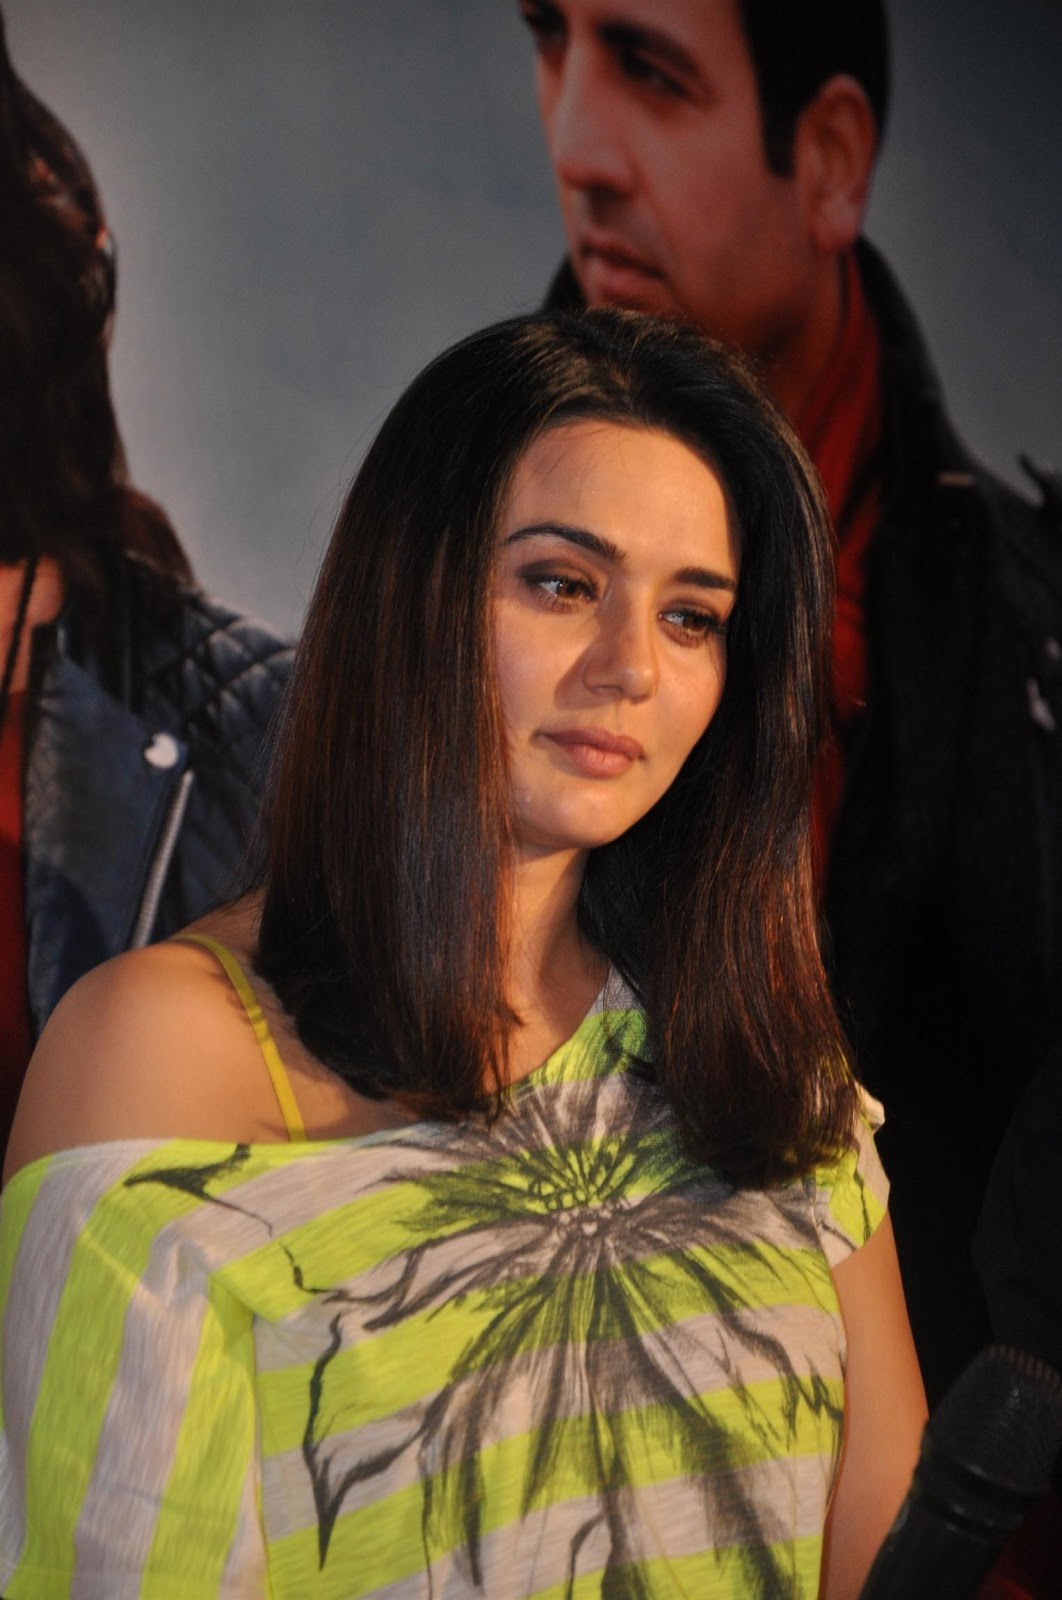 Absolutely Preity zinta bollywood for